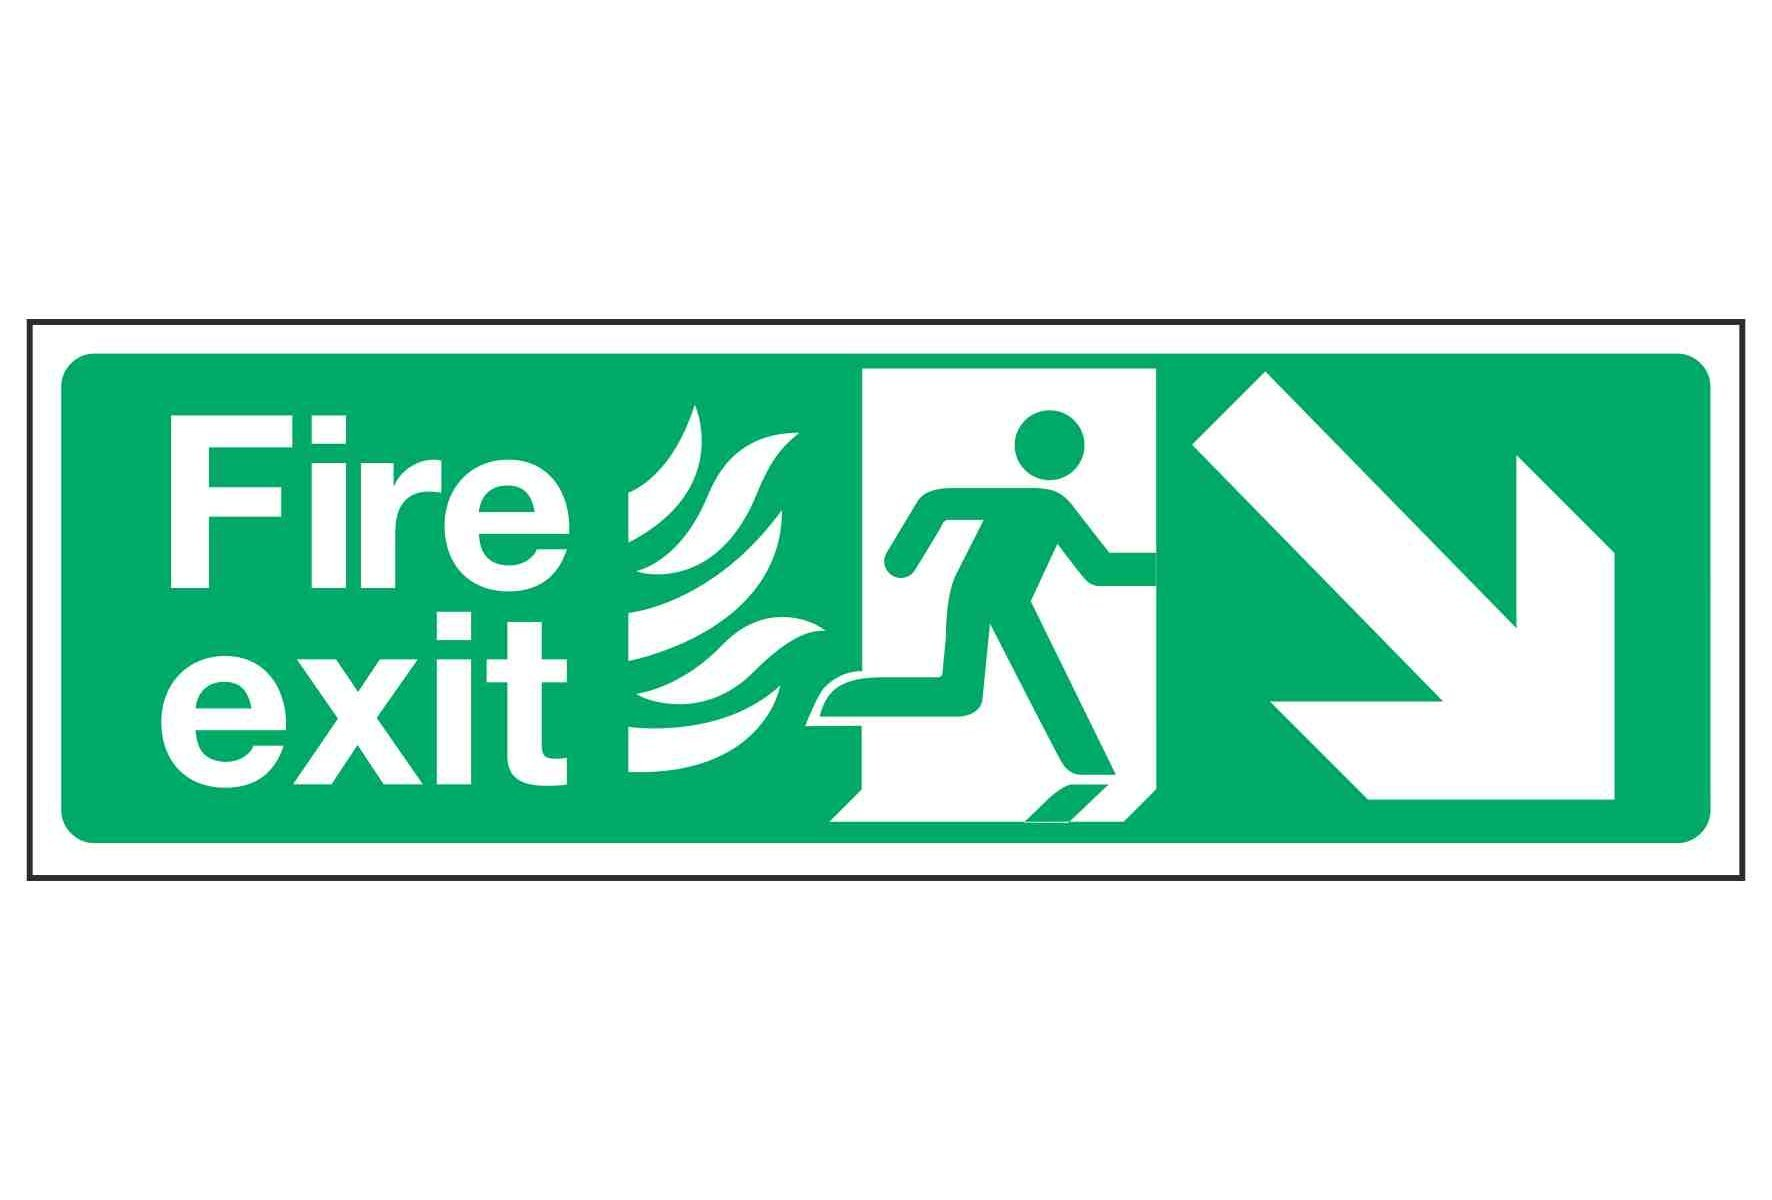 Fire exit / Arrow Down Right - NHS